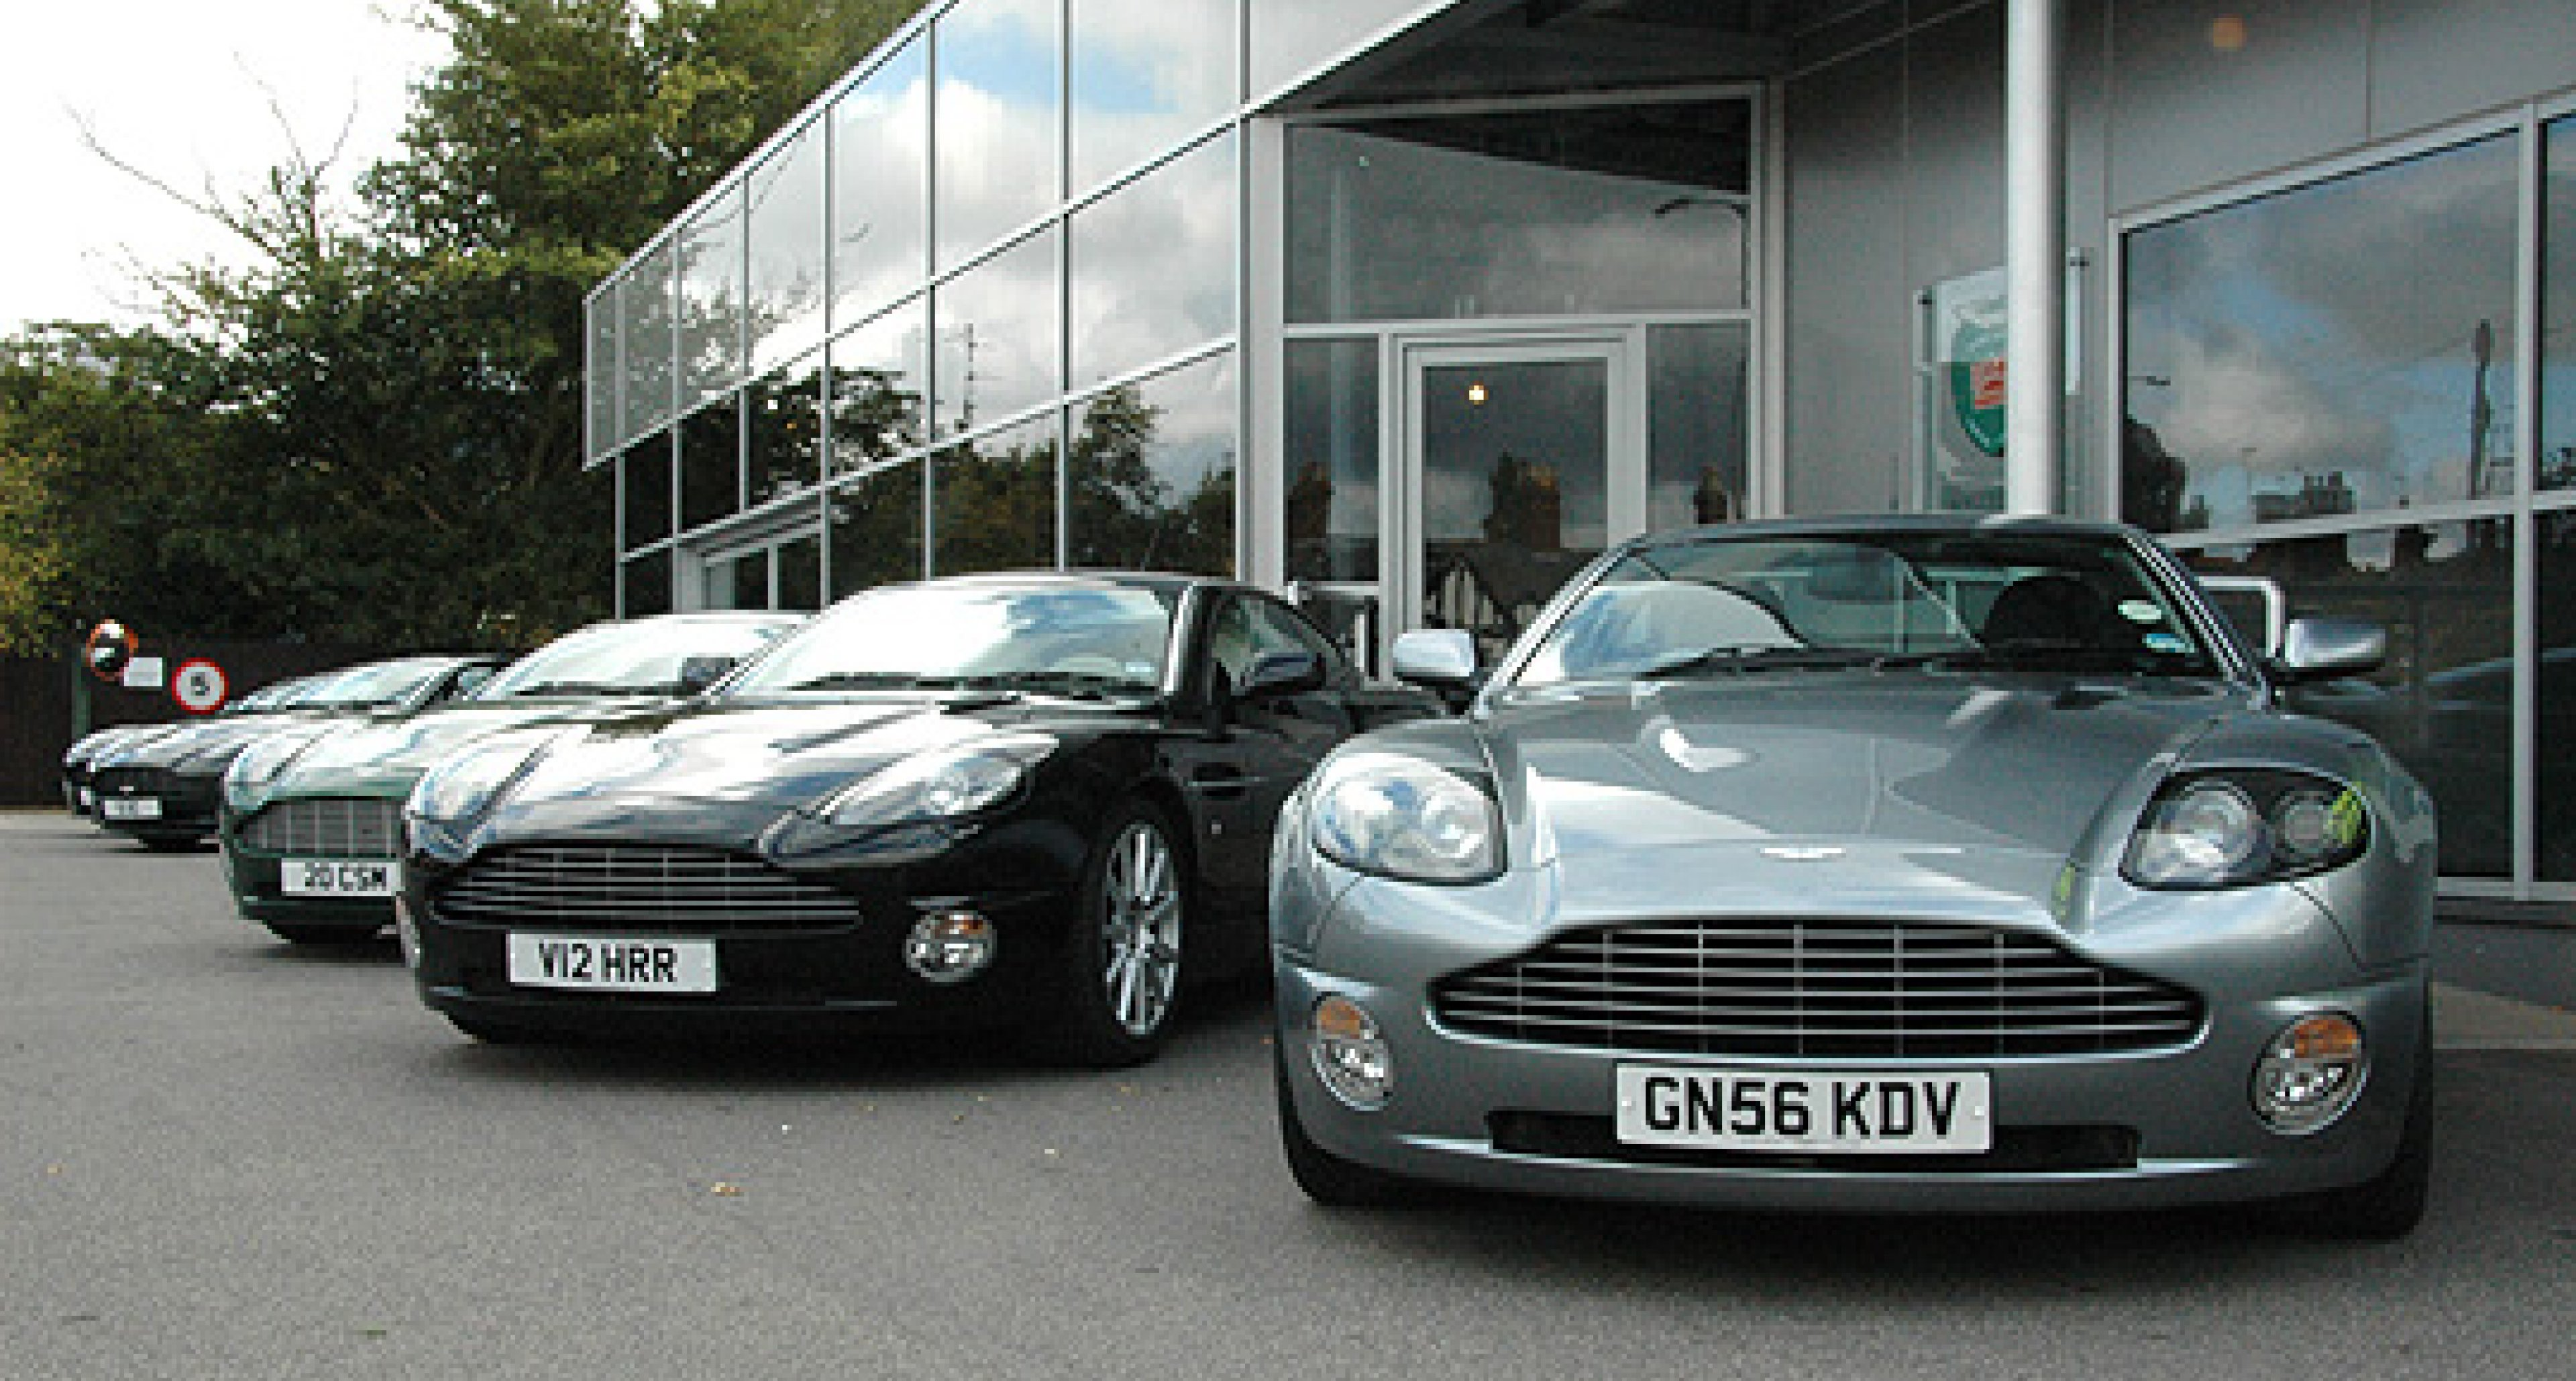 Aston Martin 'Vanquish Celebration Day' 2009 at Works Service